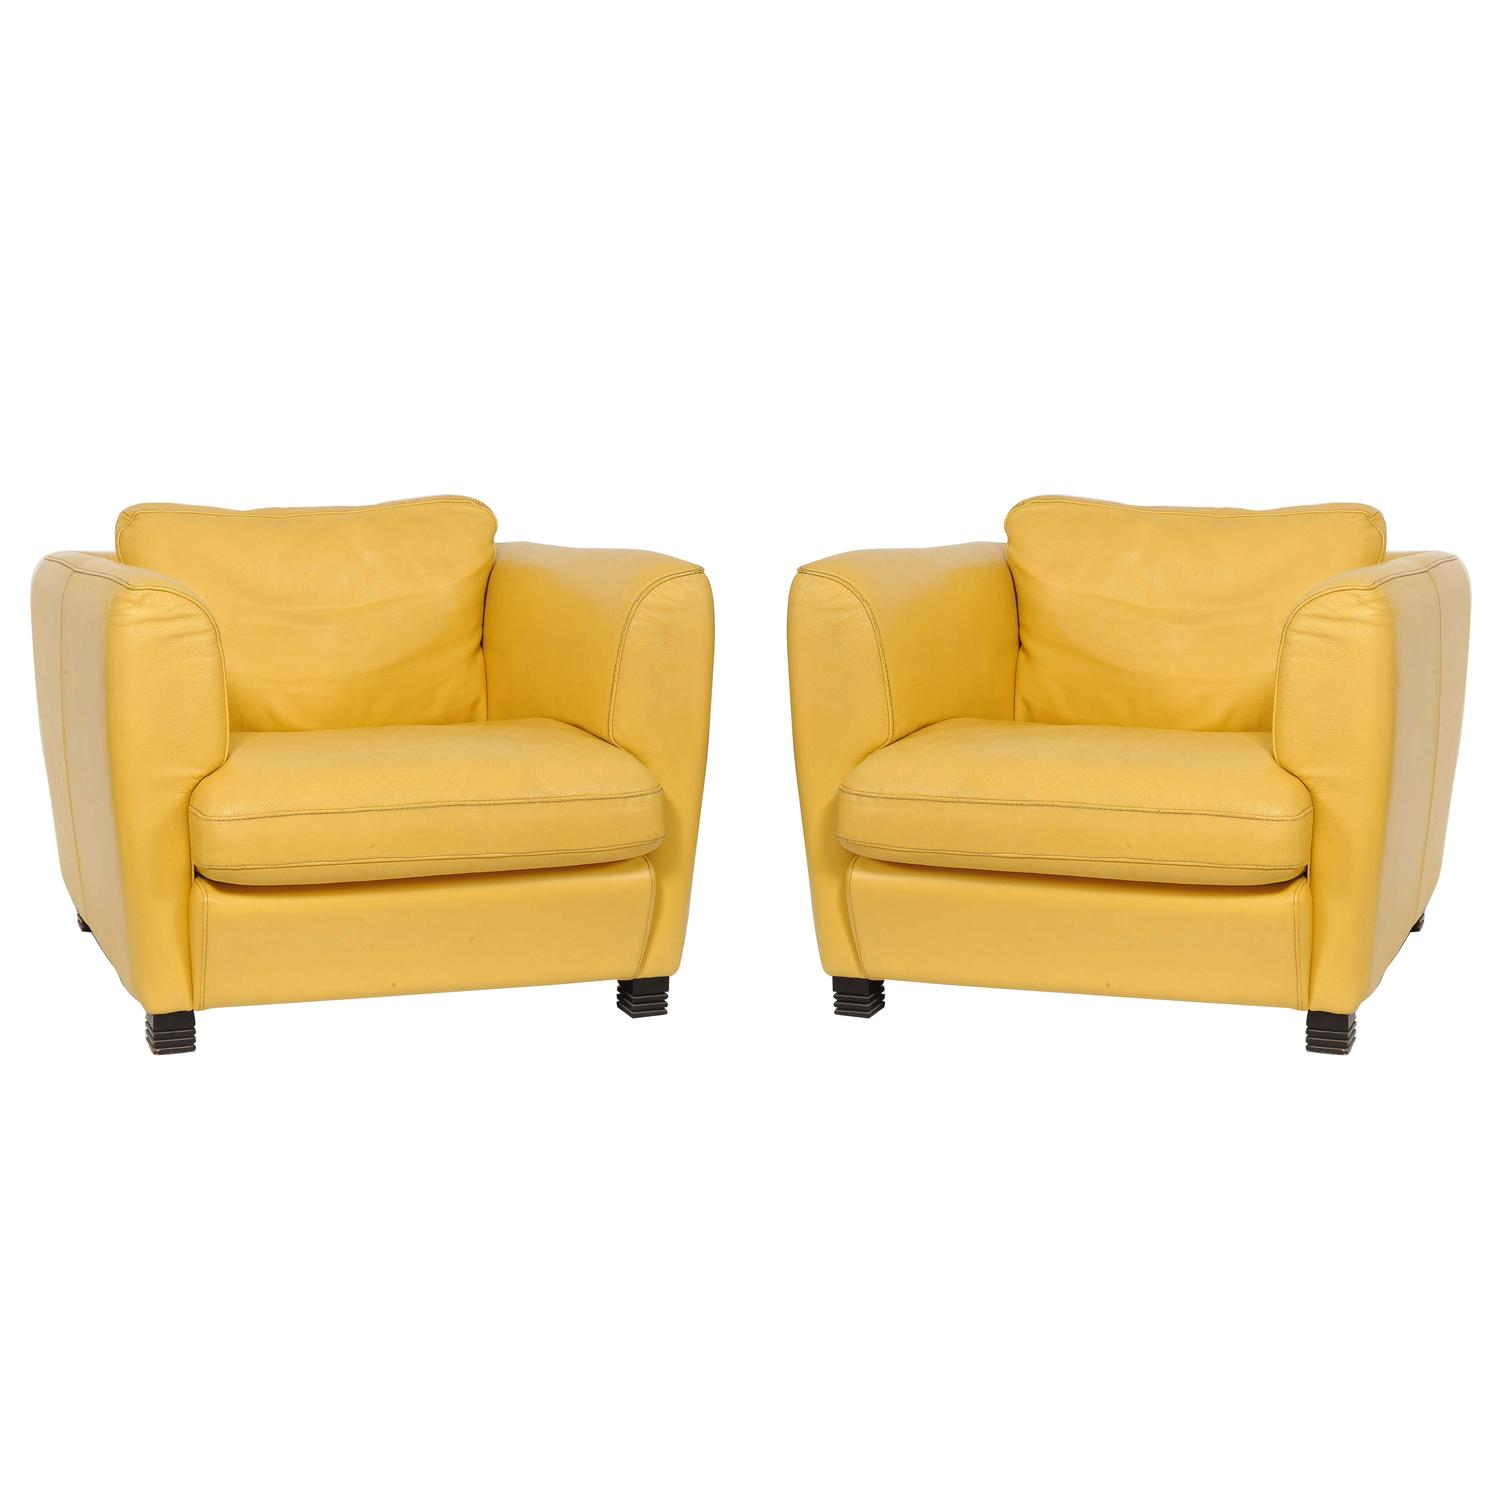 leather club chairs for sale best seat cushion office chair pair of french 1960s cream yellow